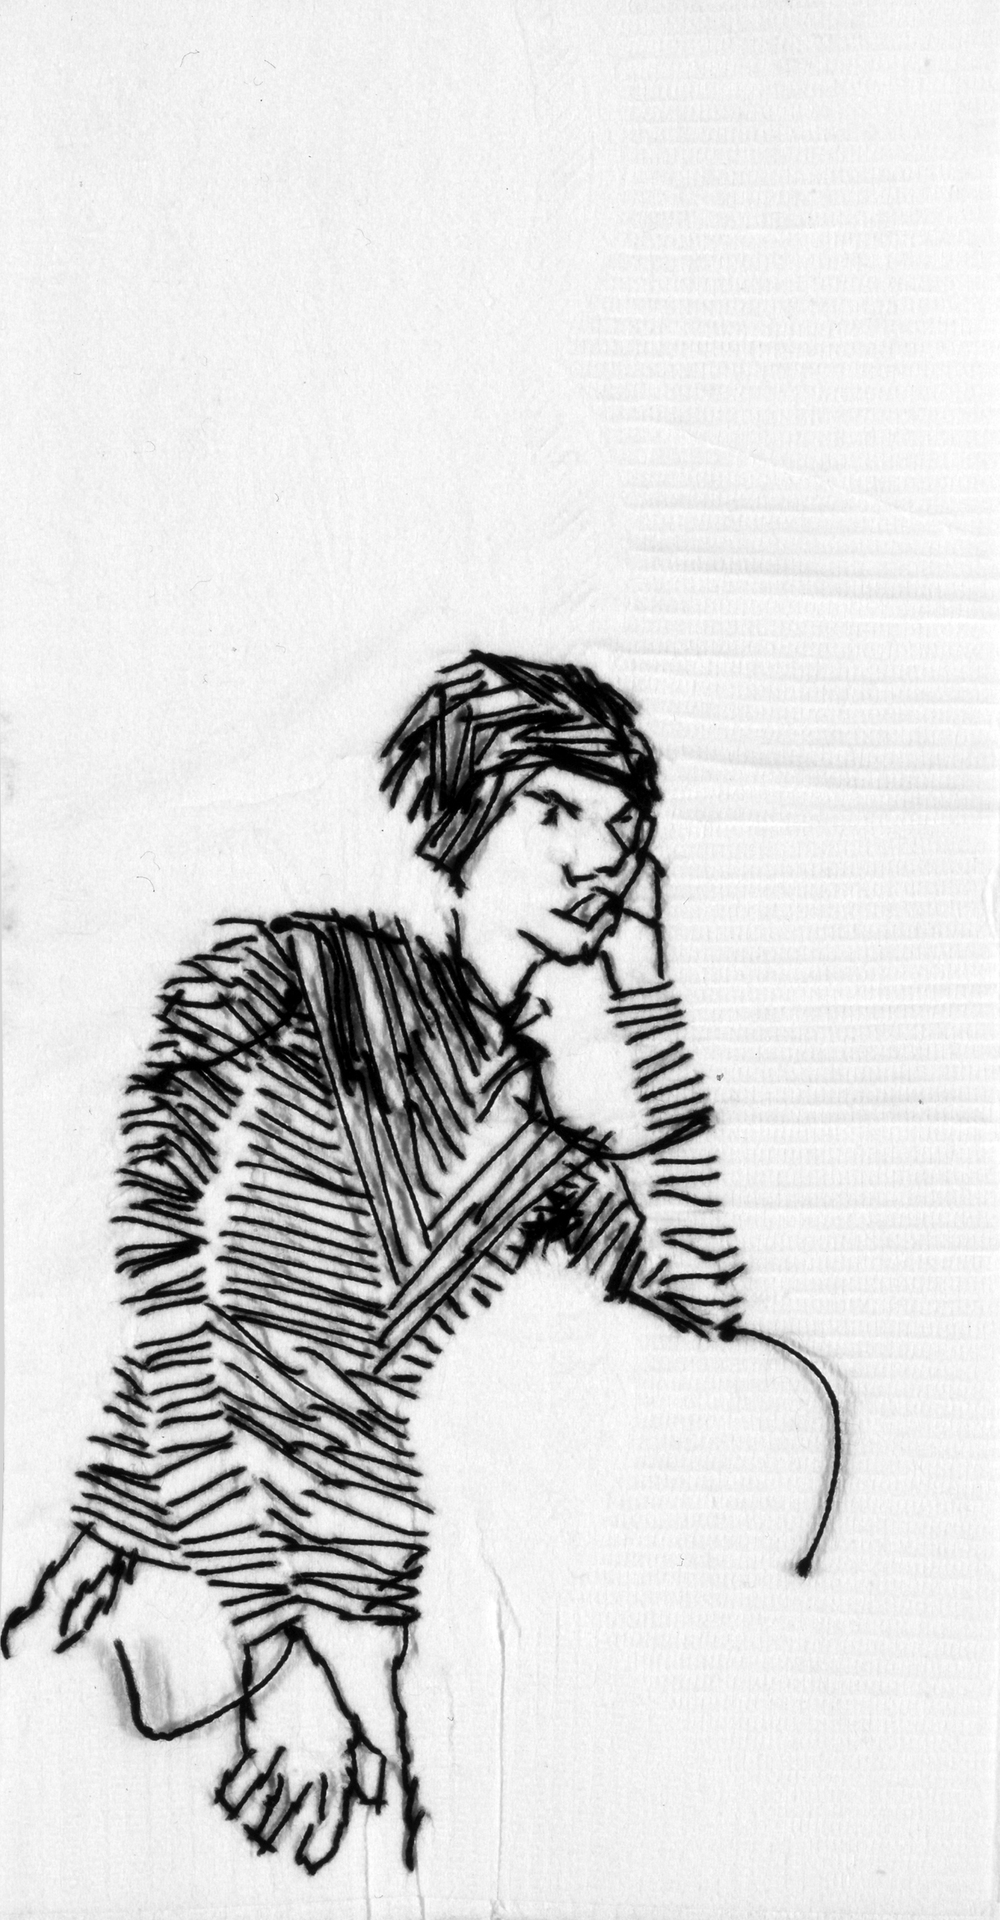 "Ryan I  Black thread on paper napkin, 7"" x 4"", 2004"